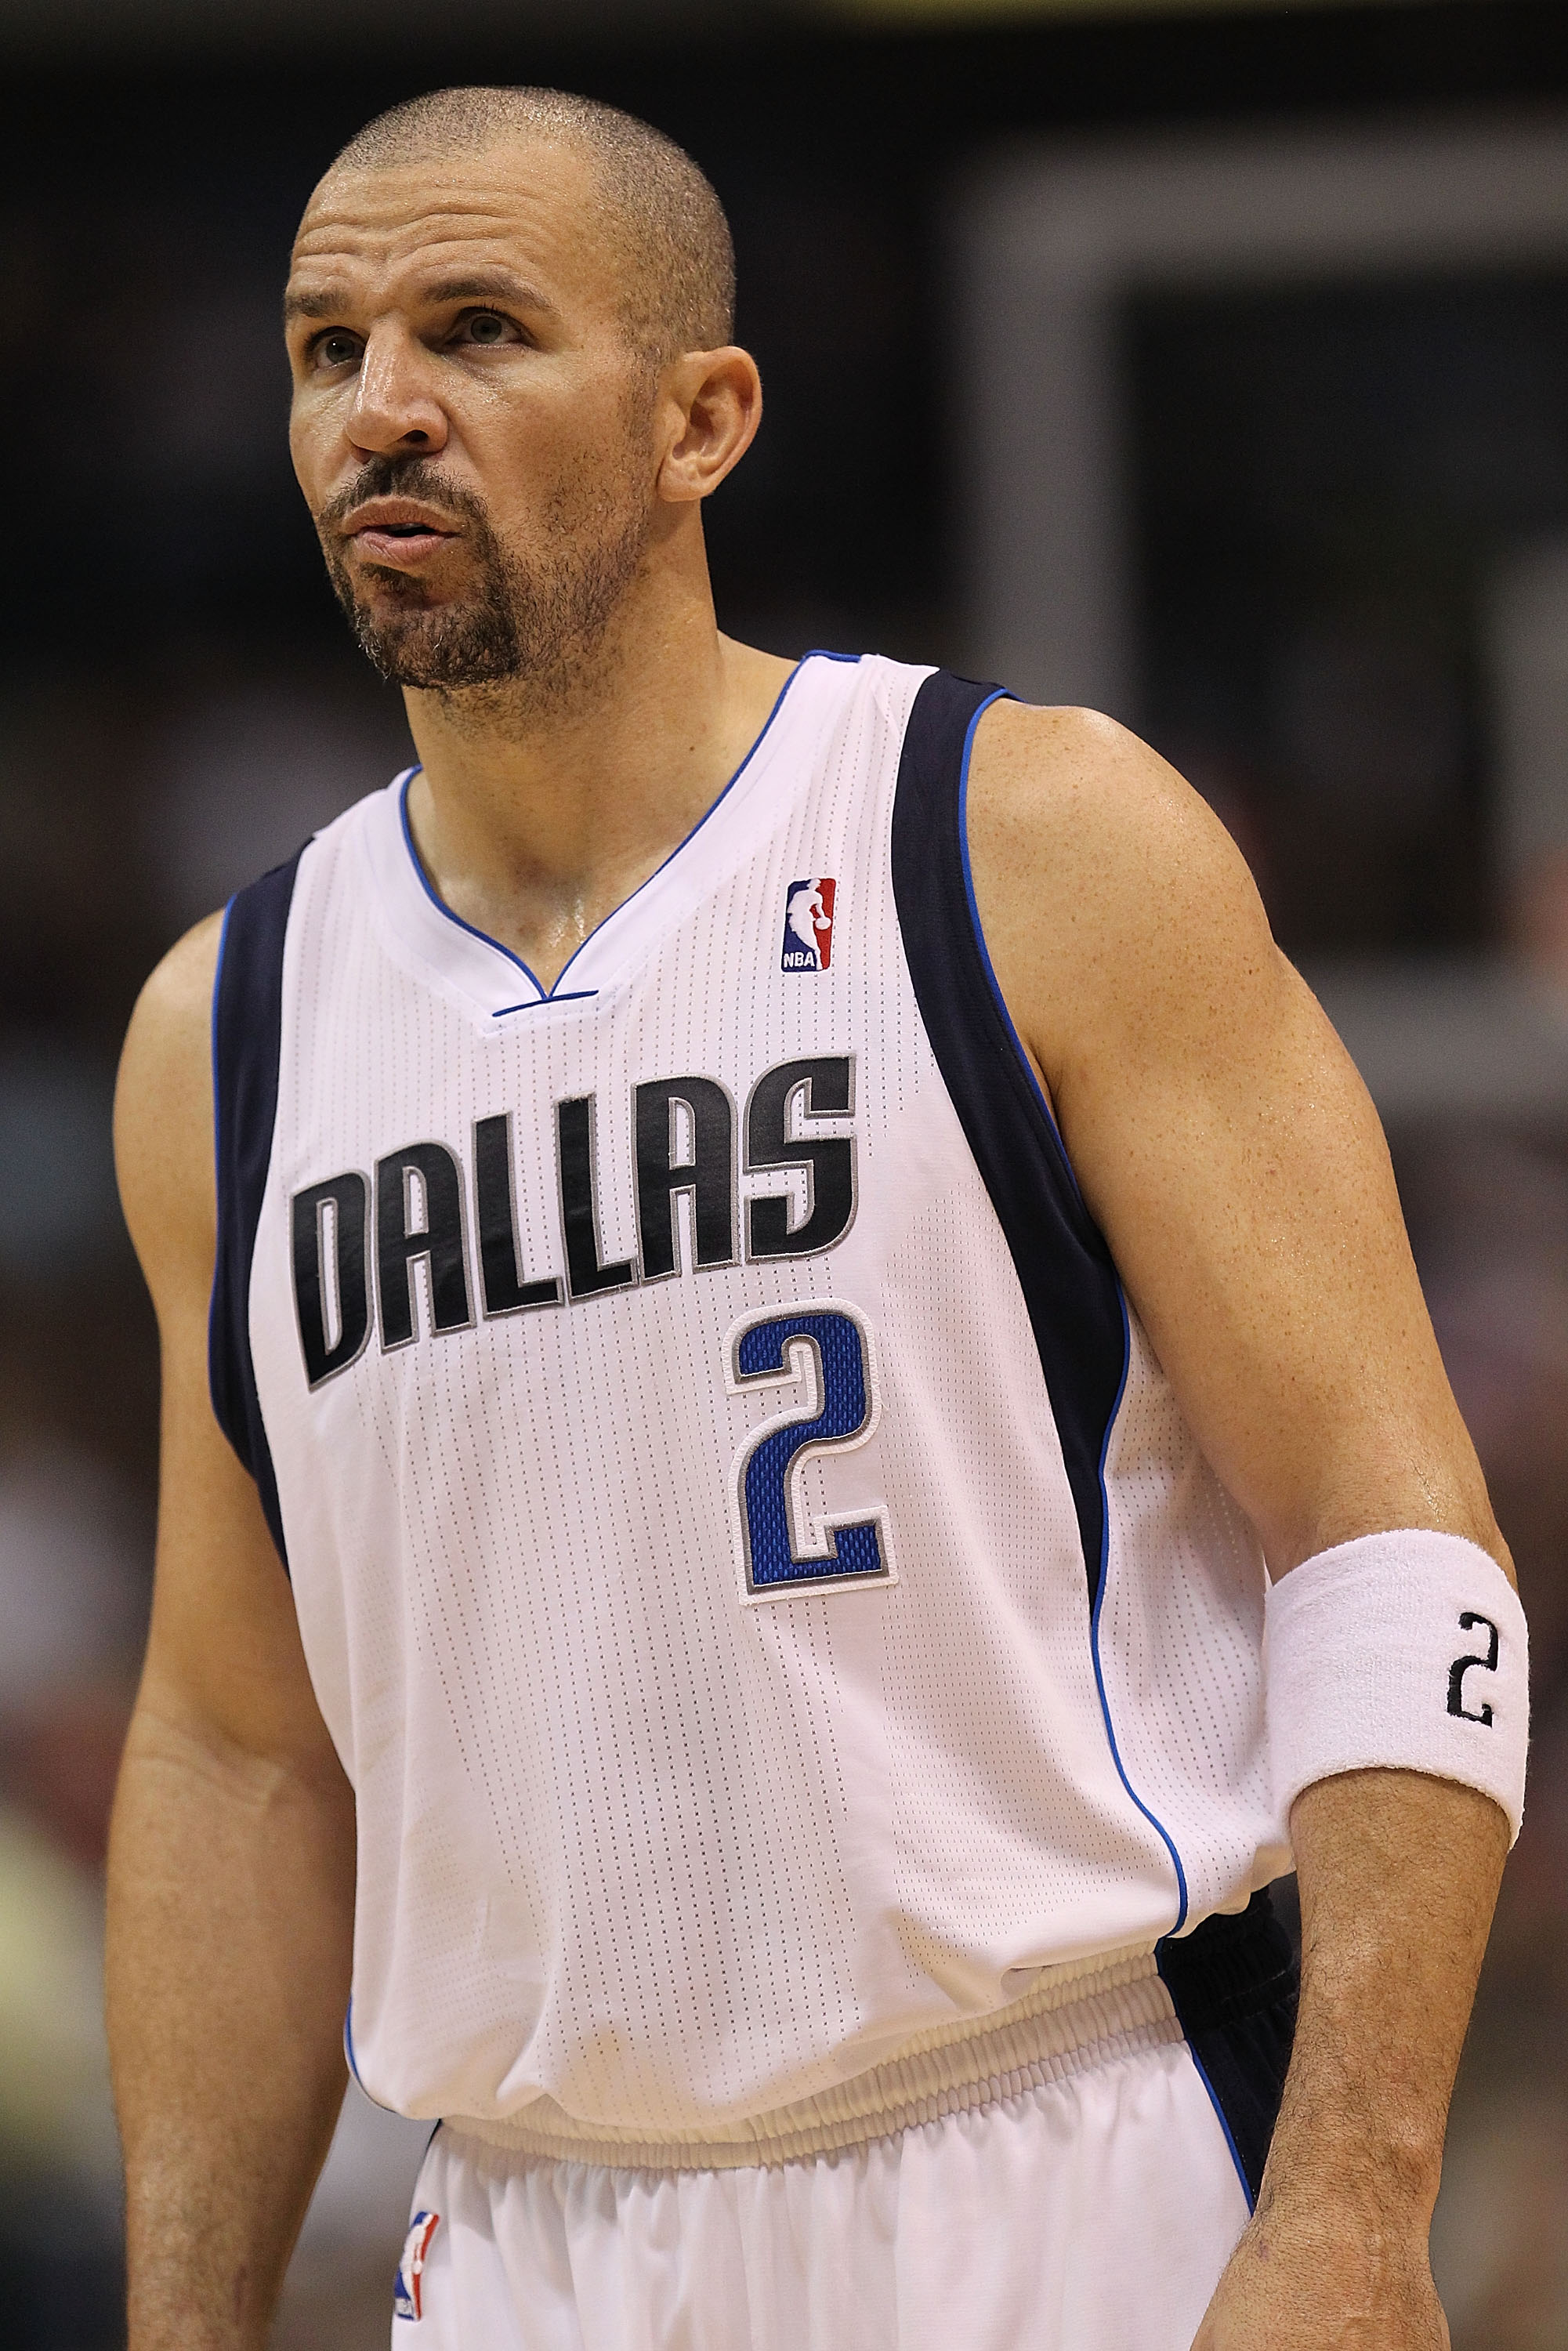 DALLAS, TX - DECEMBER 15:  Guard Jason Kidd #2 of the Dallas Mavericks at American Airlines Center on December 15, 2010 in Dallas, Texas. NOTE TO USER: User expressly acknowledges and agrees that, by downloading and or using this photograph, User is conse